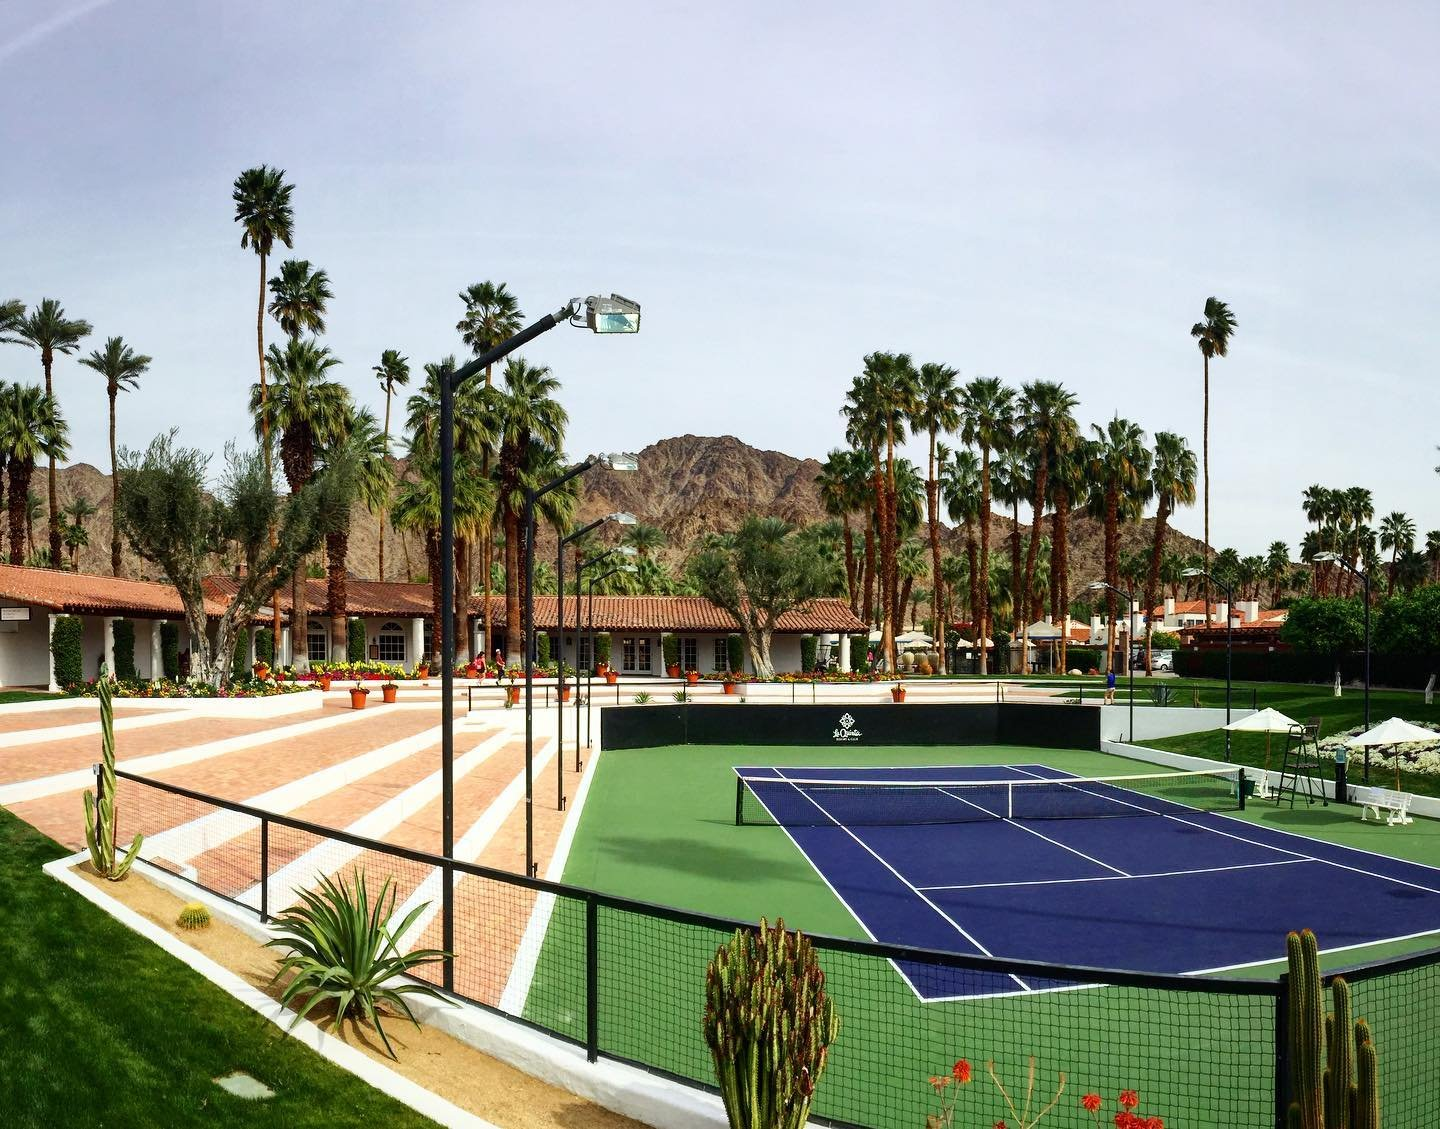 2021 PPA Masters in Palm Springs, California is Assigned New Event Dates